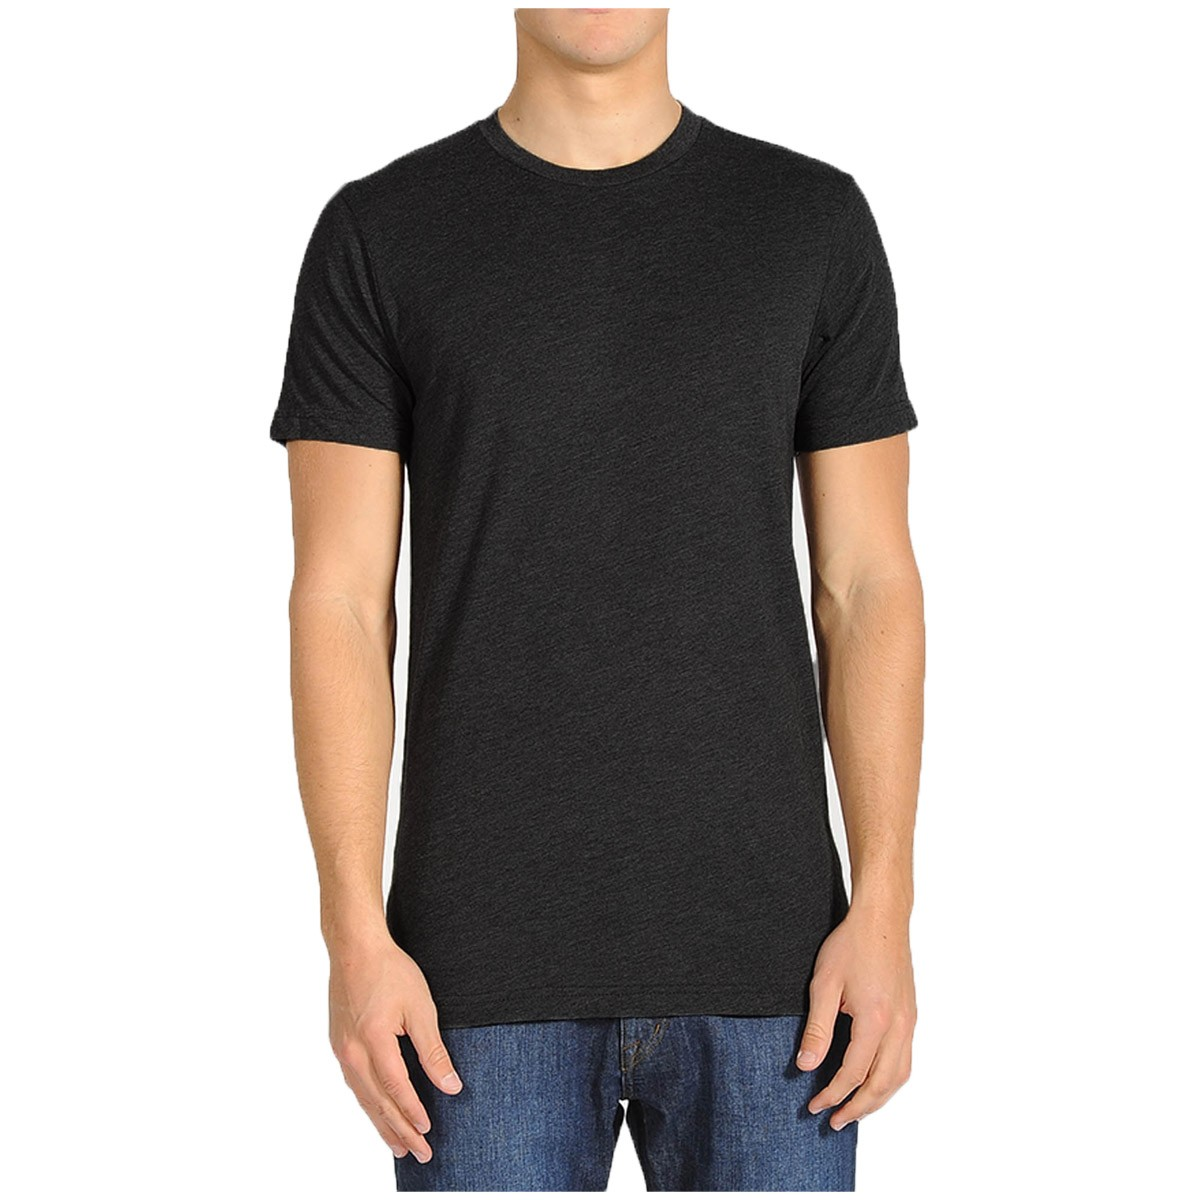 Volcom solid short sleeve t shirt black for Black and white short sleeve shirts